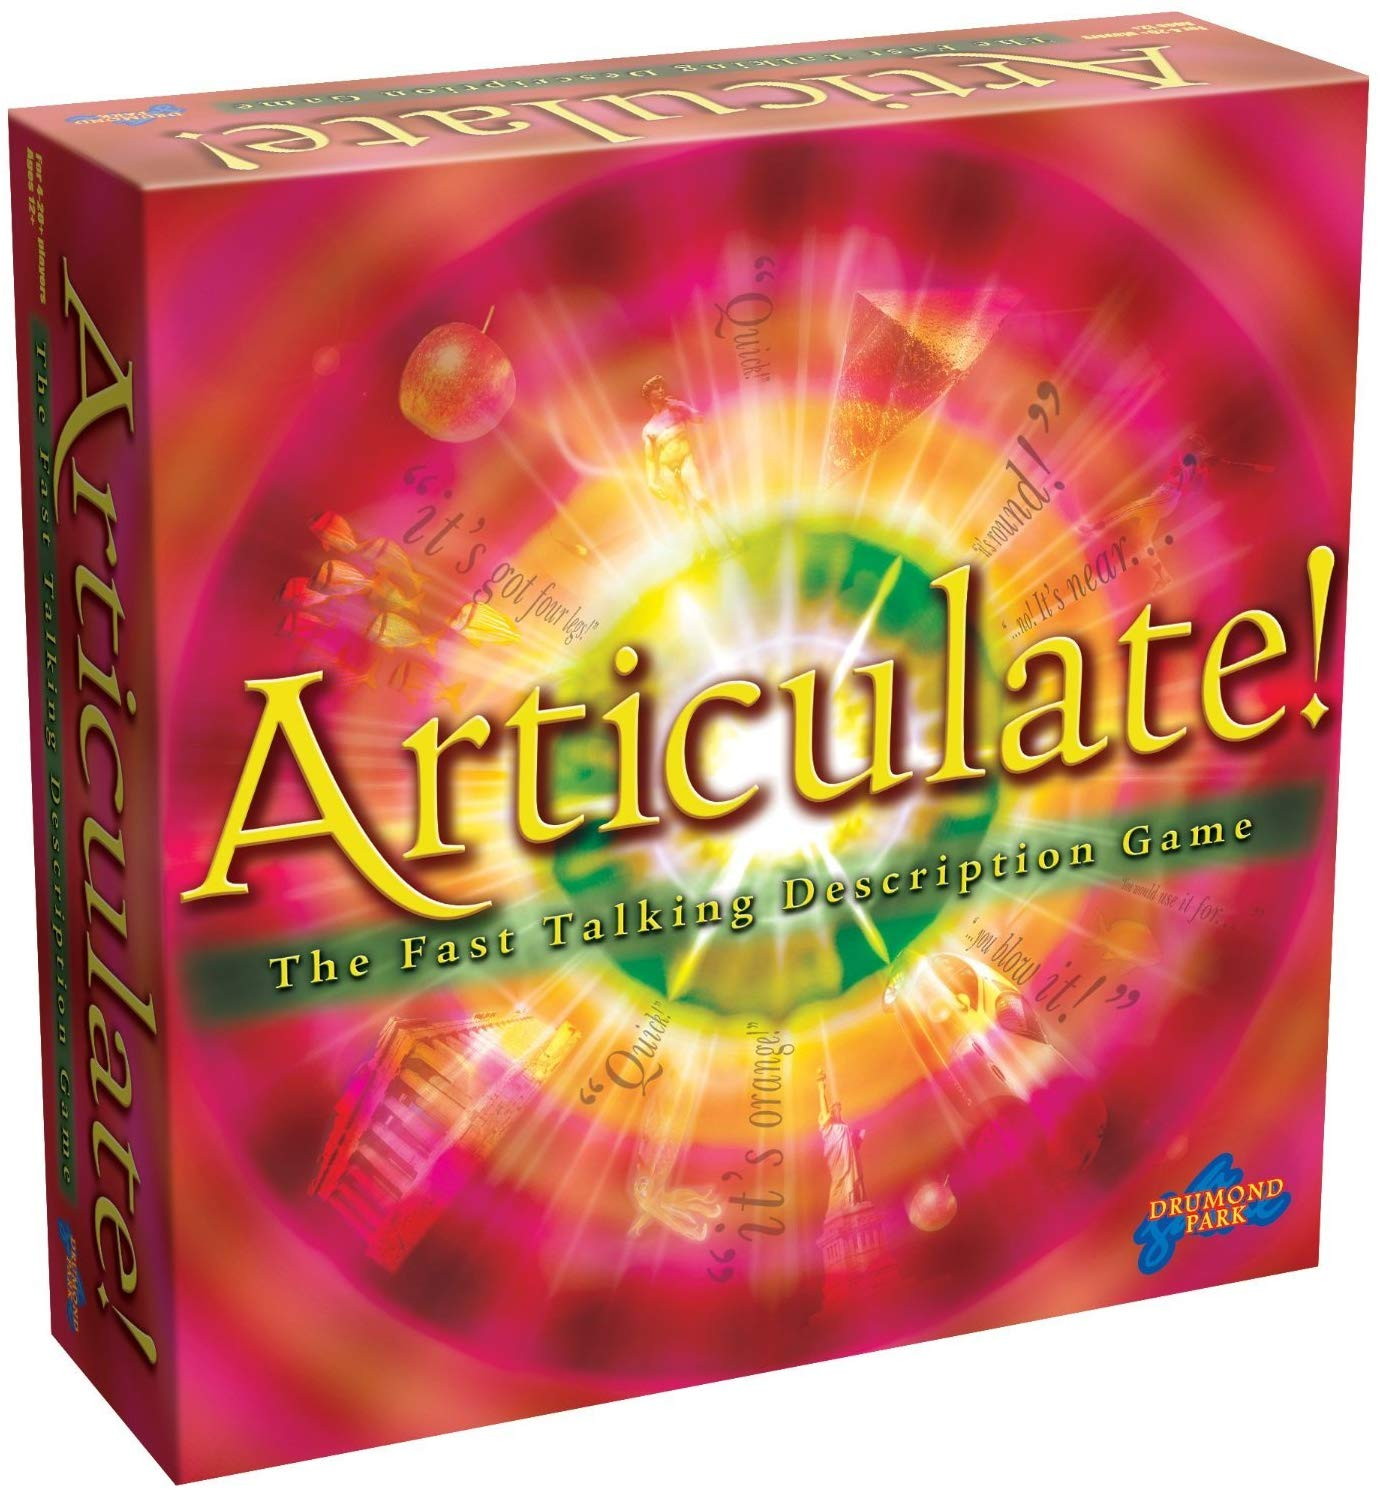 Drumond Park Articulate! Family Board Game